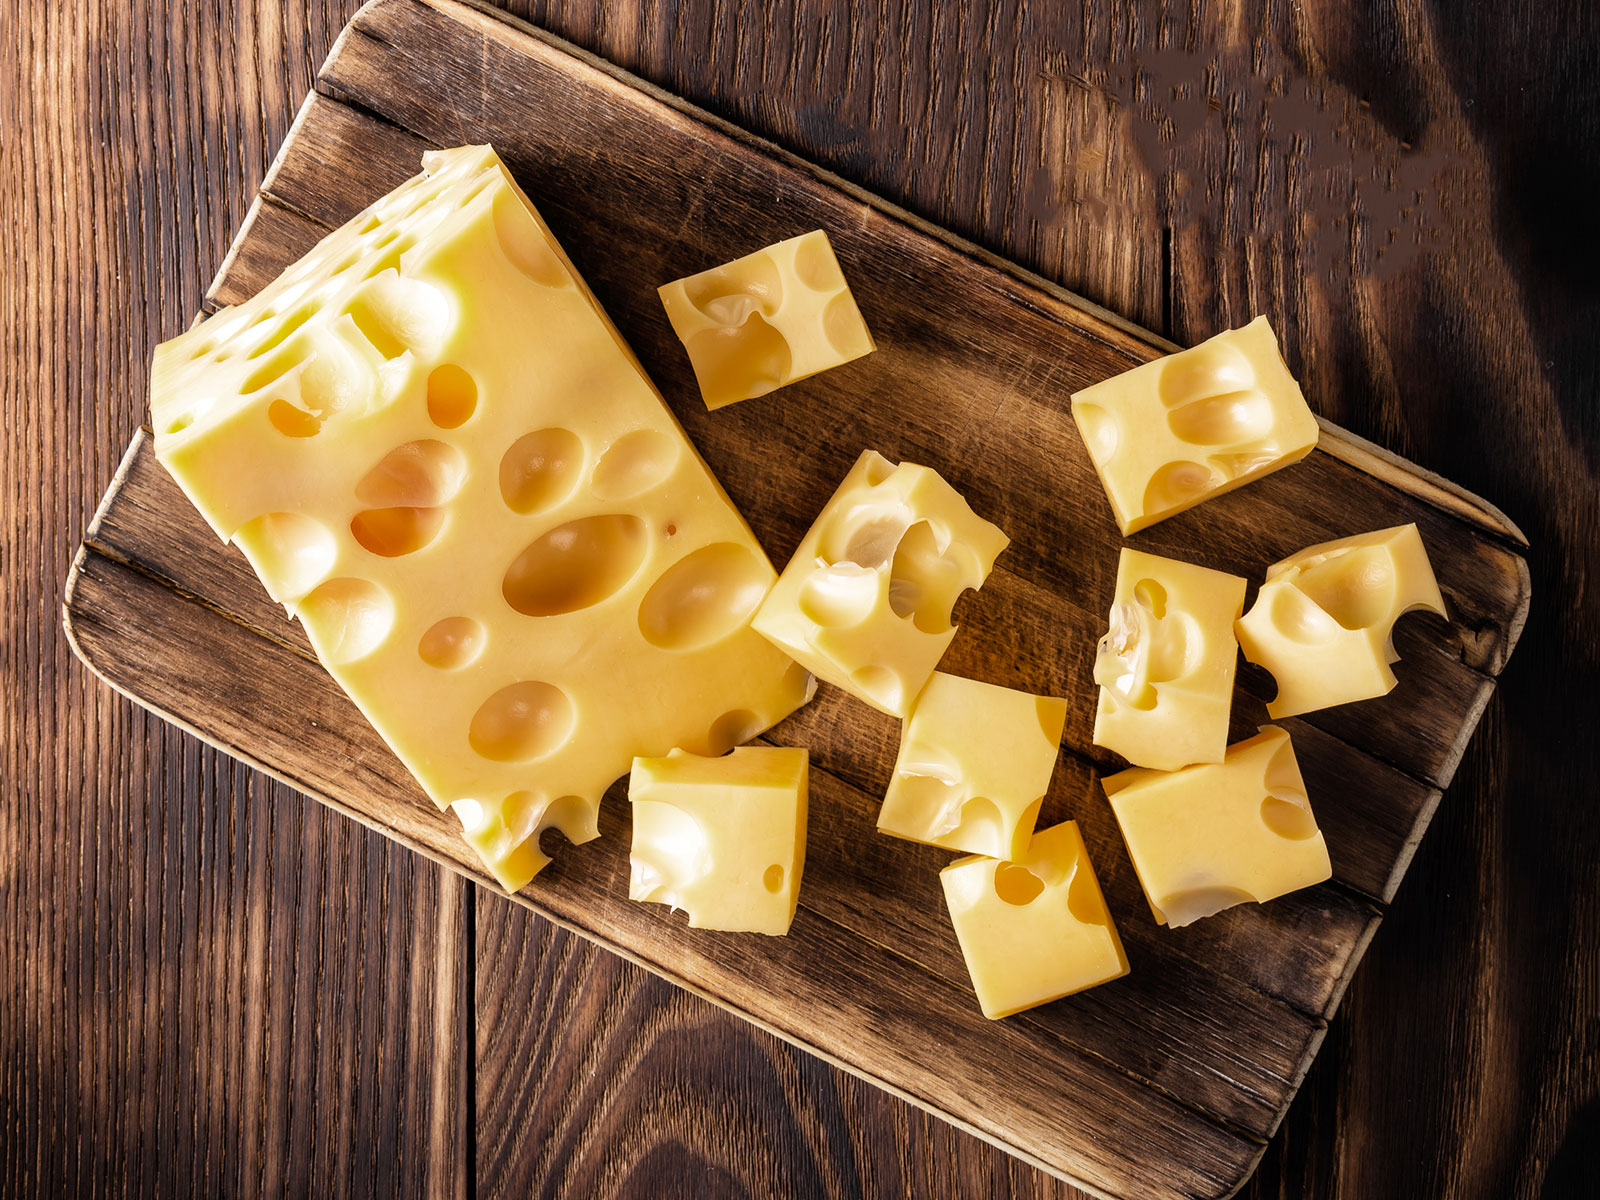 Is Swiss Cheese a Superfood?